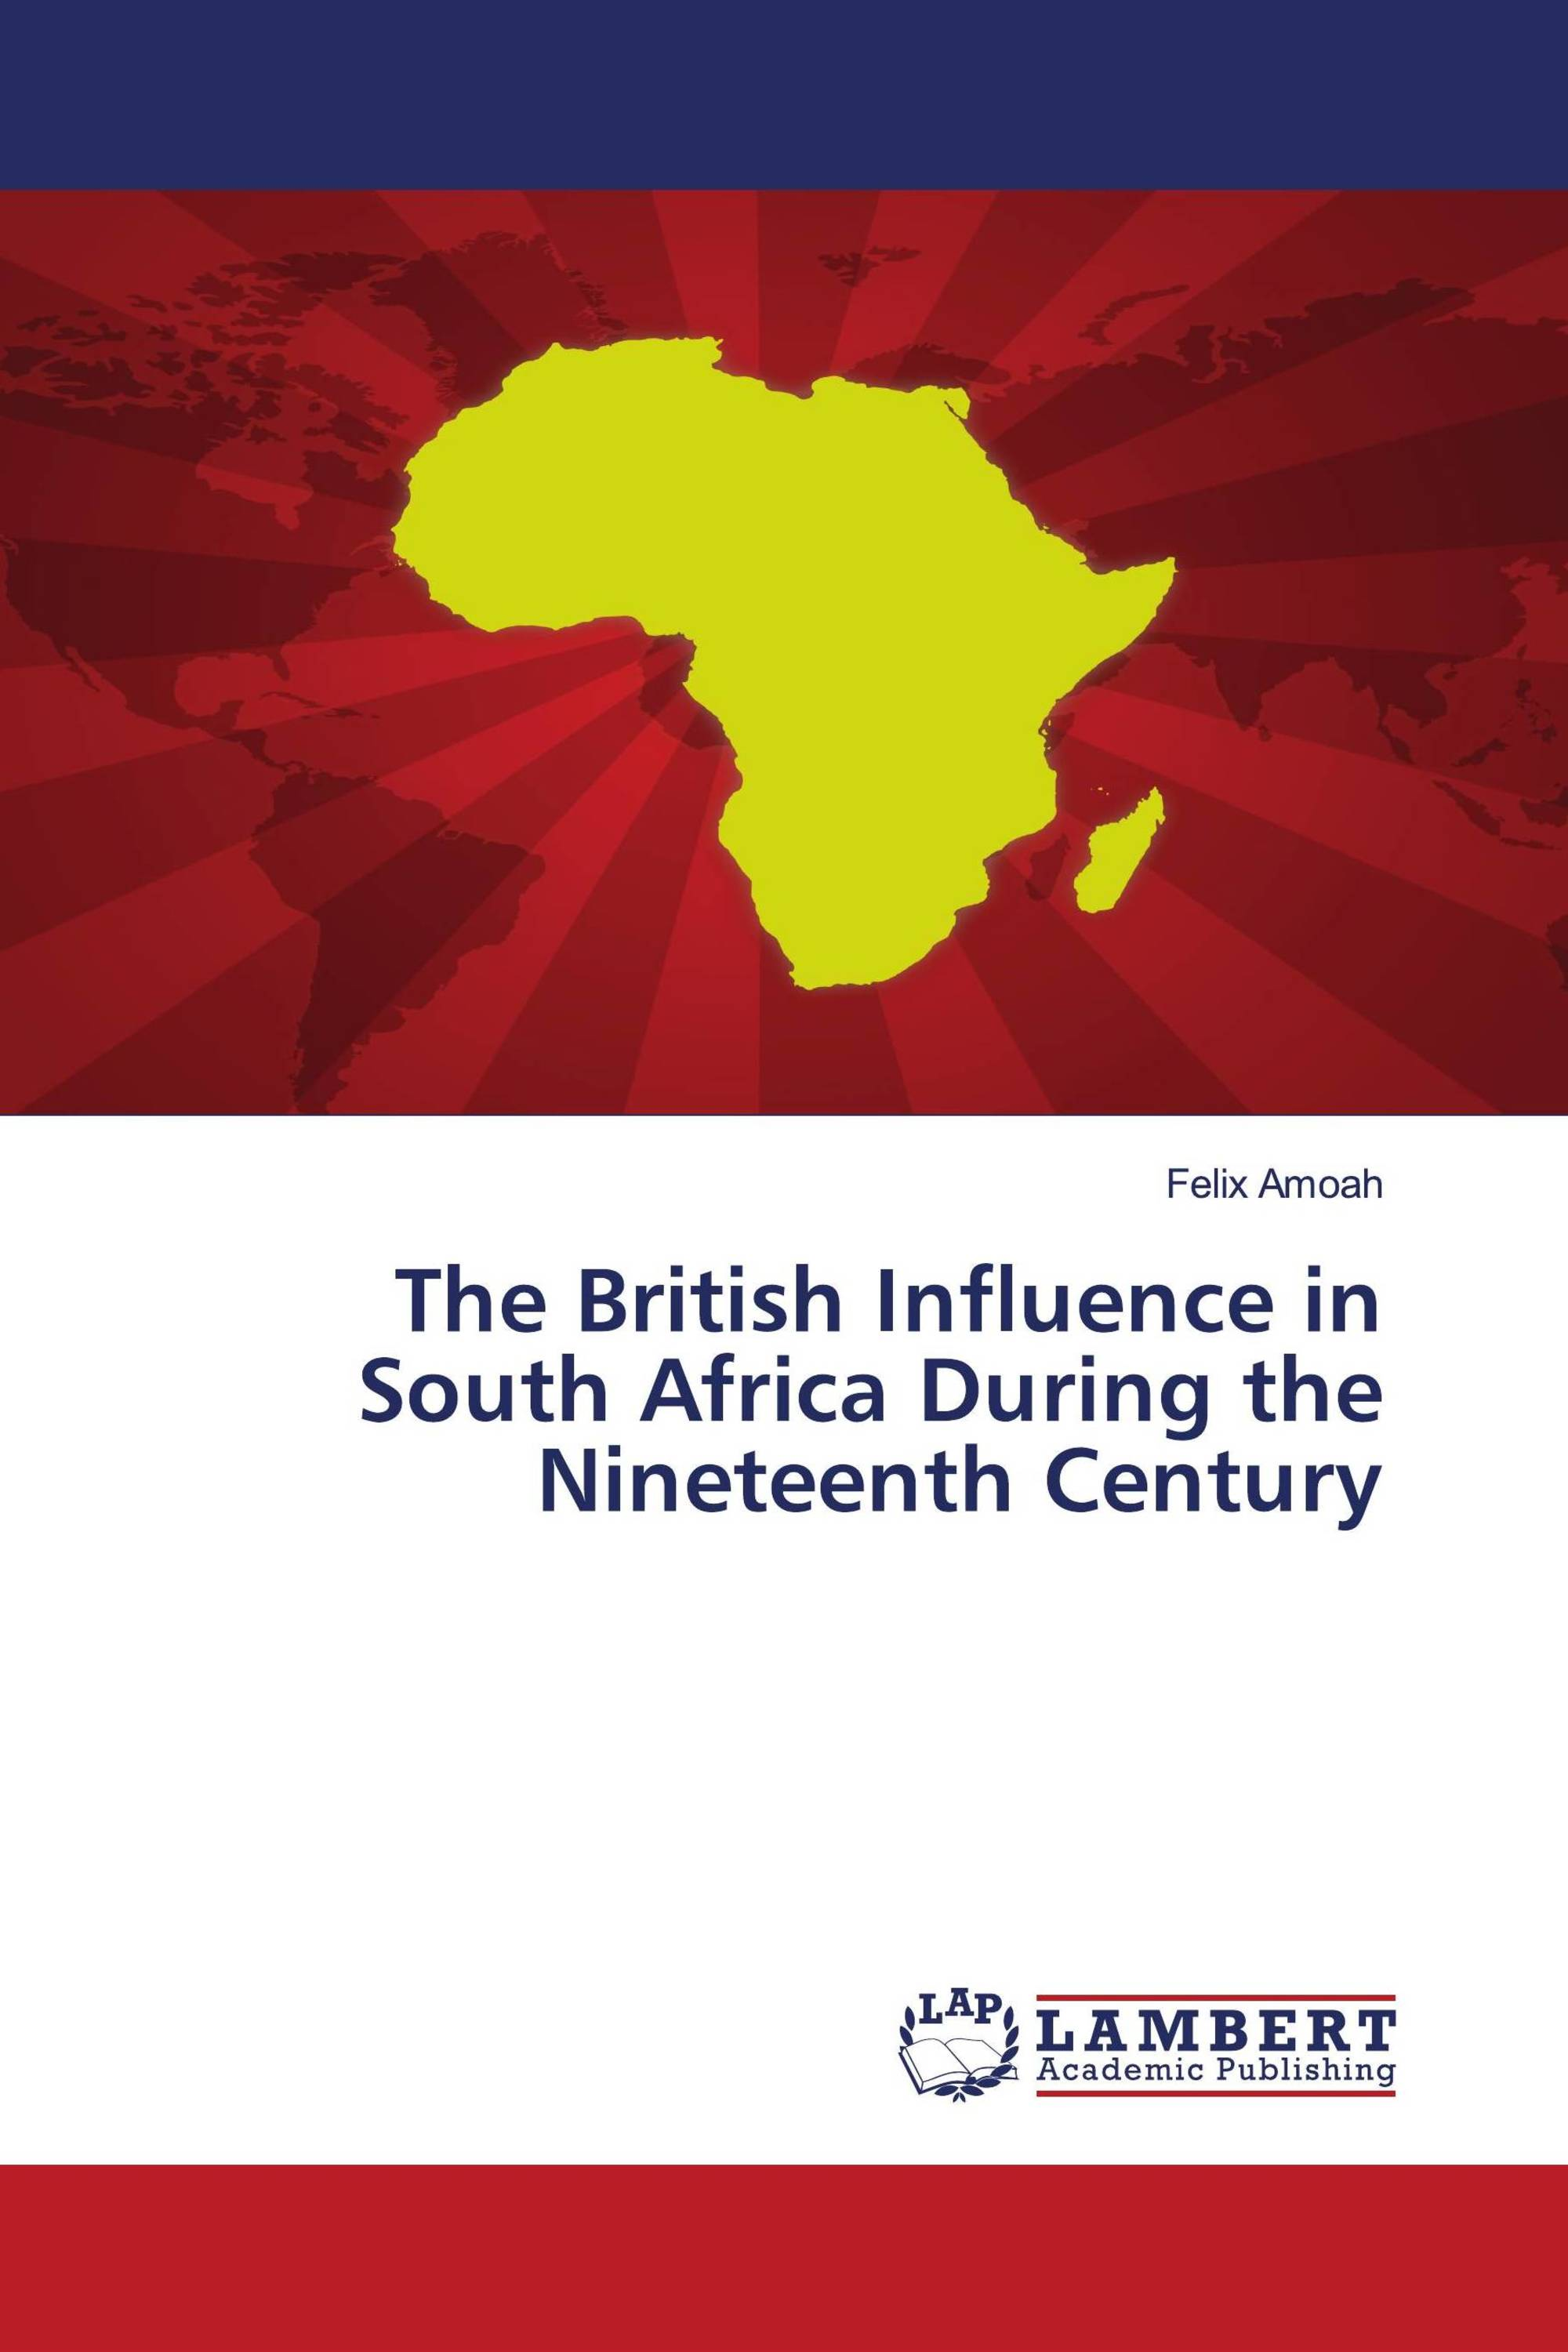 The British Influence in South Africa During the Nineteenth Century